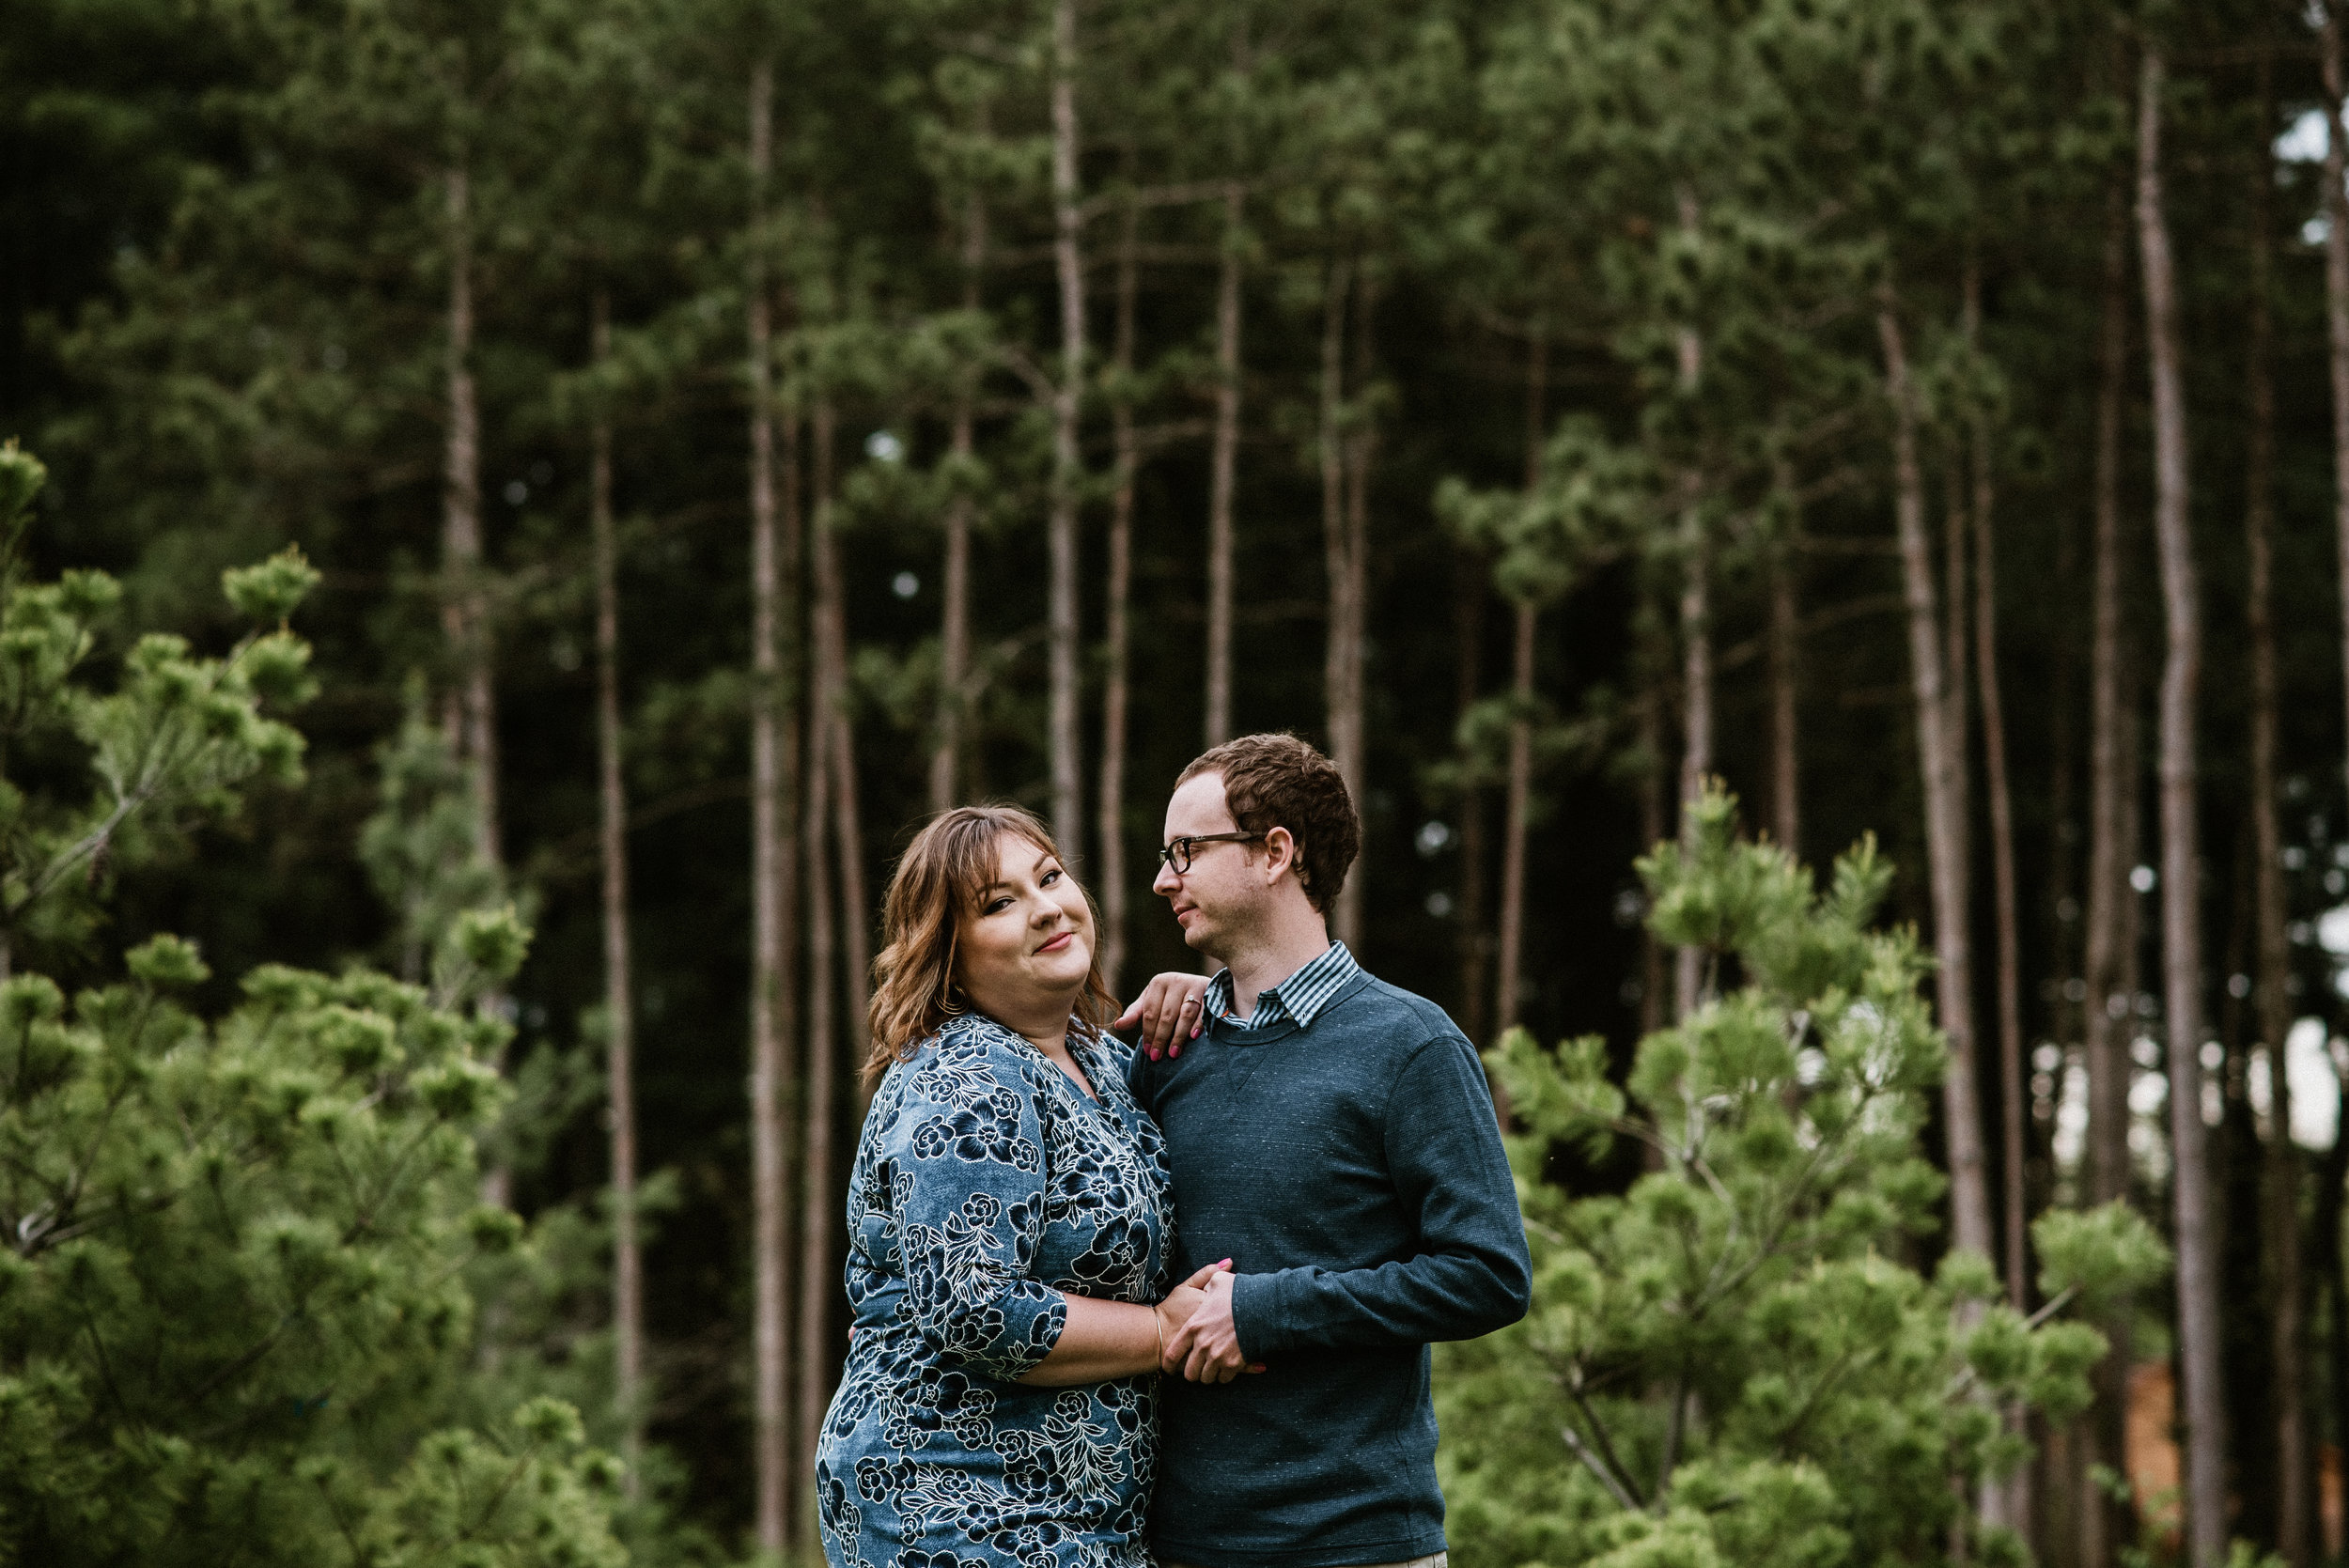 Amanda and Kyle - Amanda And Kyle | The Morton Arboretum Spring Engagement | Lisle, IL